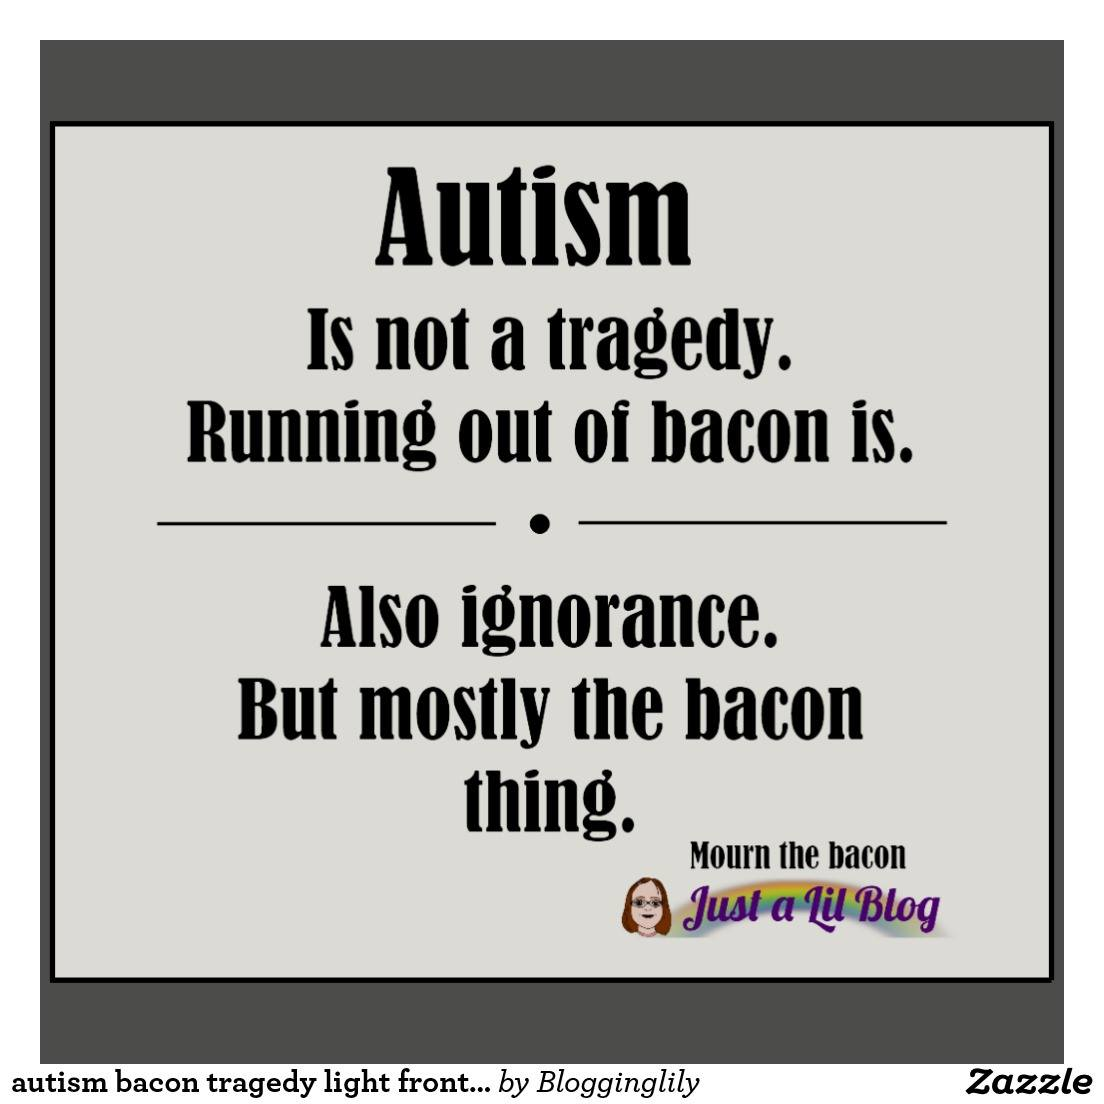 1f995806d autism is not a tragedy, running out of bacon is. also ignorance but mostly